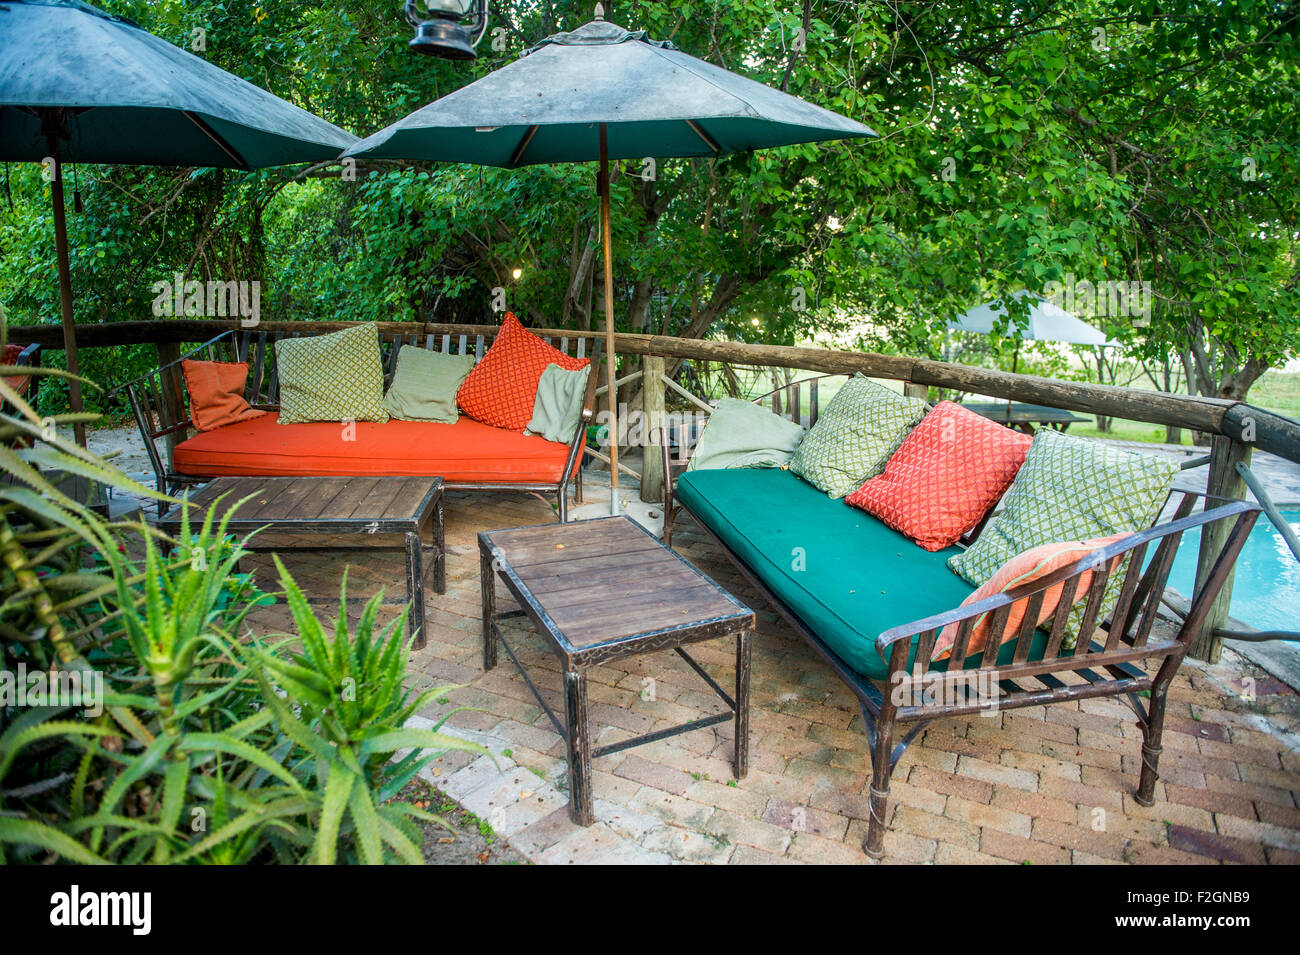 Outdoor patio with colorful cushioned couches in Botswana, Africa - Stock Image